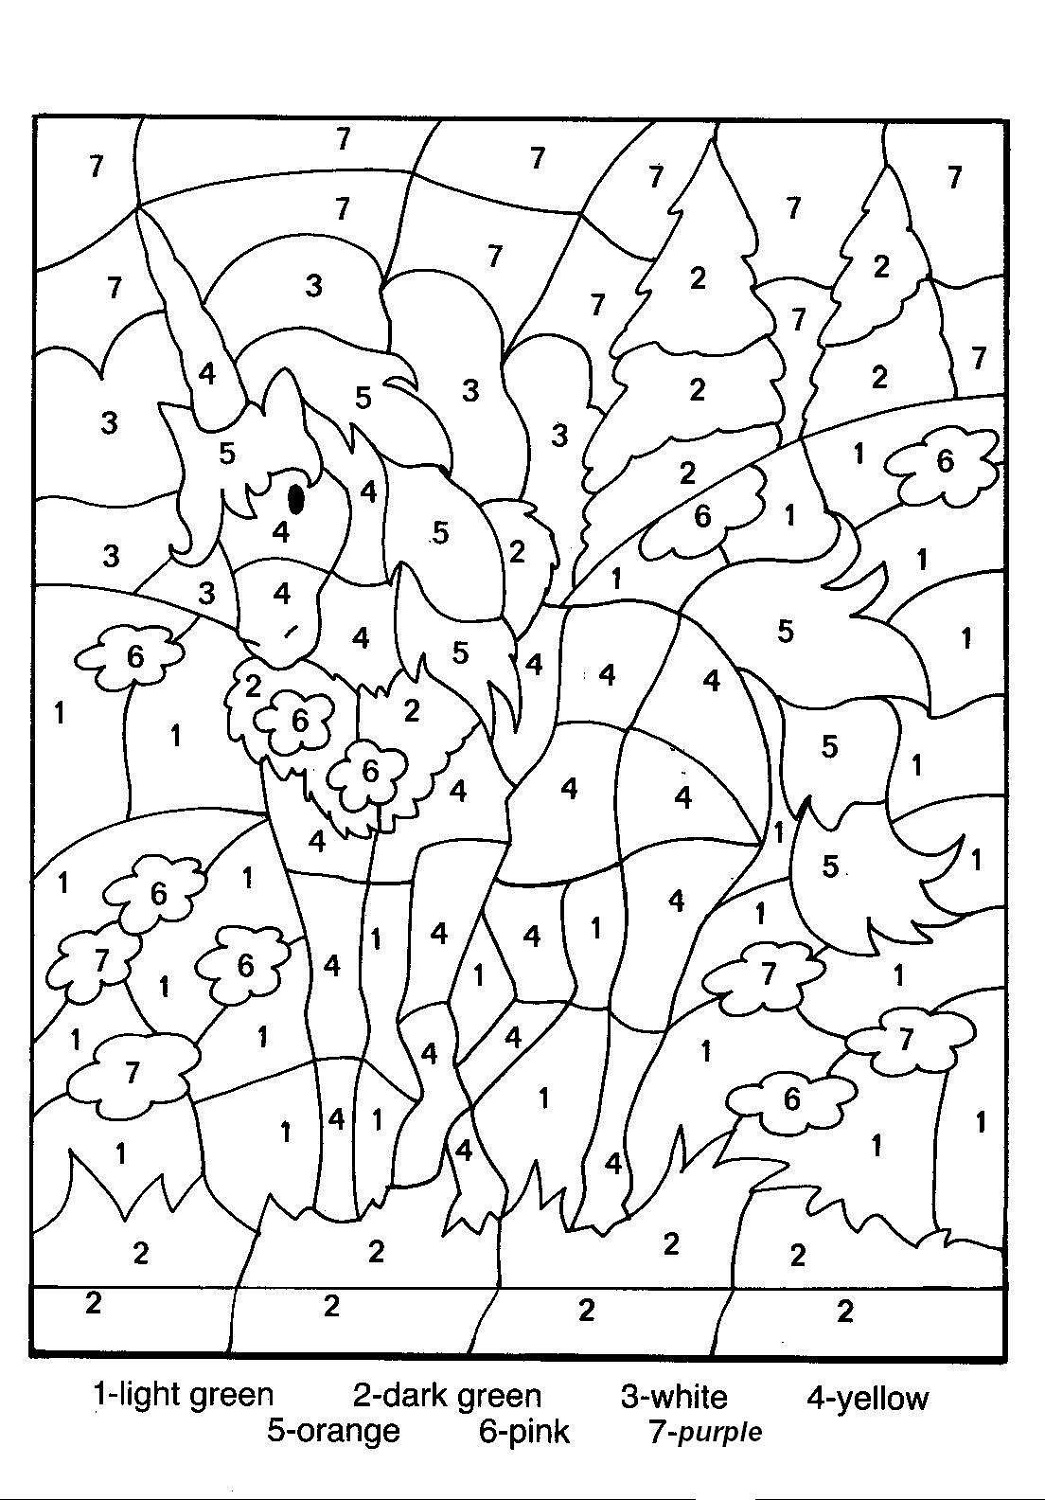 coloring pages color by number 22 cheerful christmas color by numbers kittybabylovecom coloring number by color pages